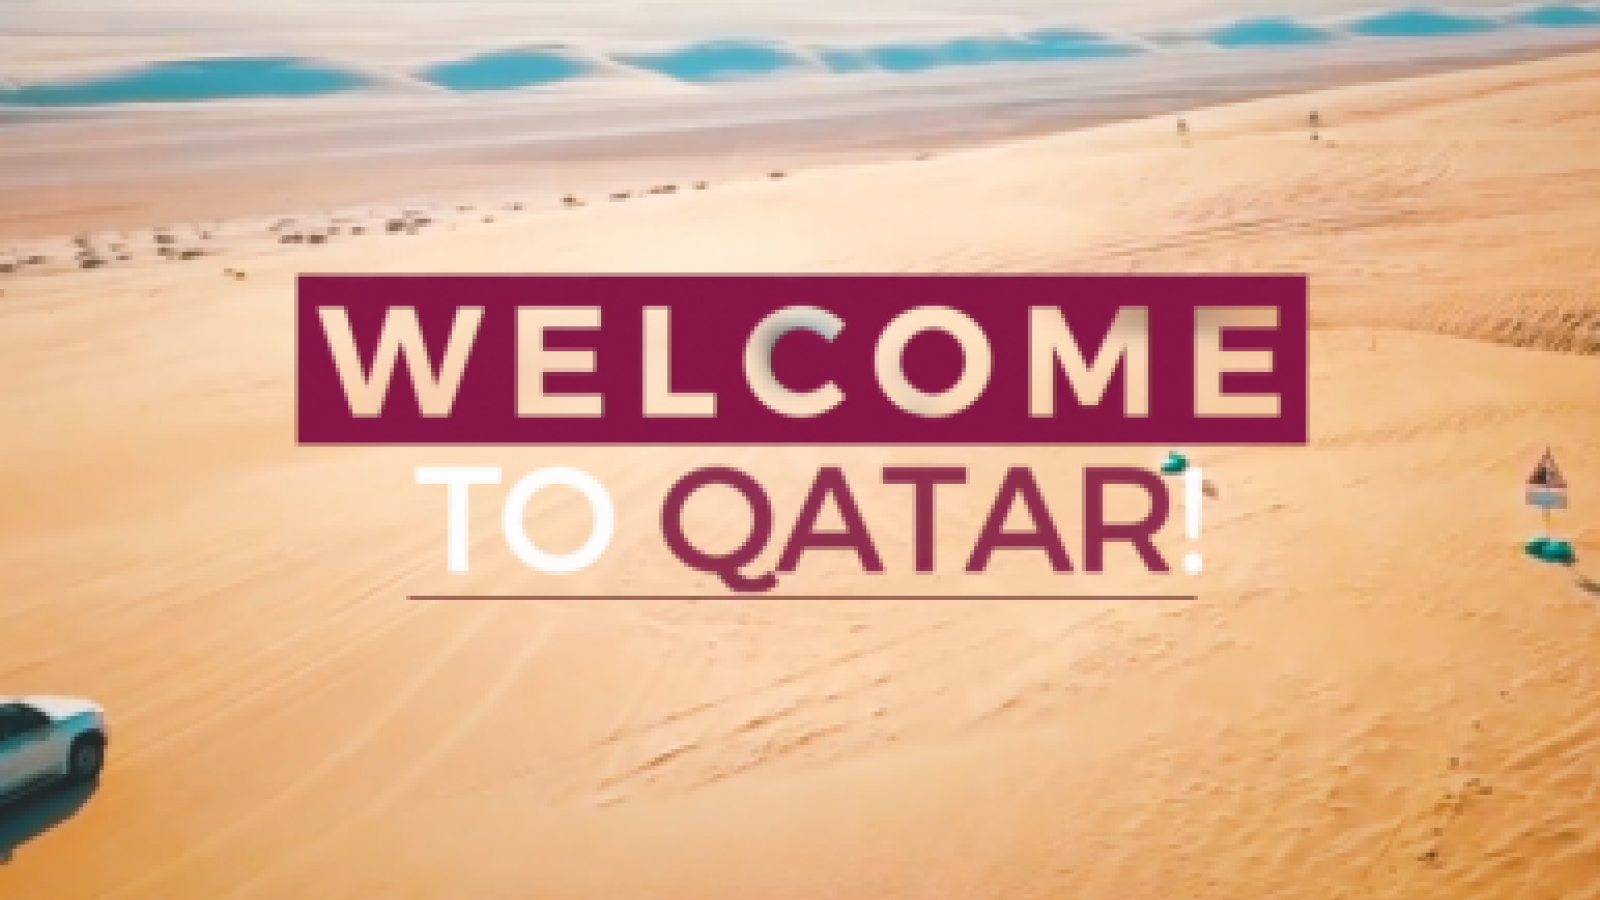 WATCH: Welcome to Qatar - Sealine